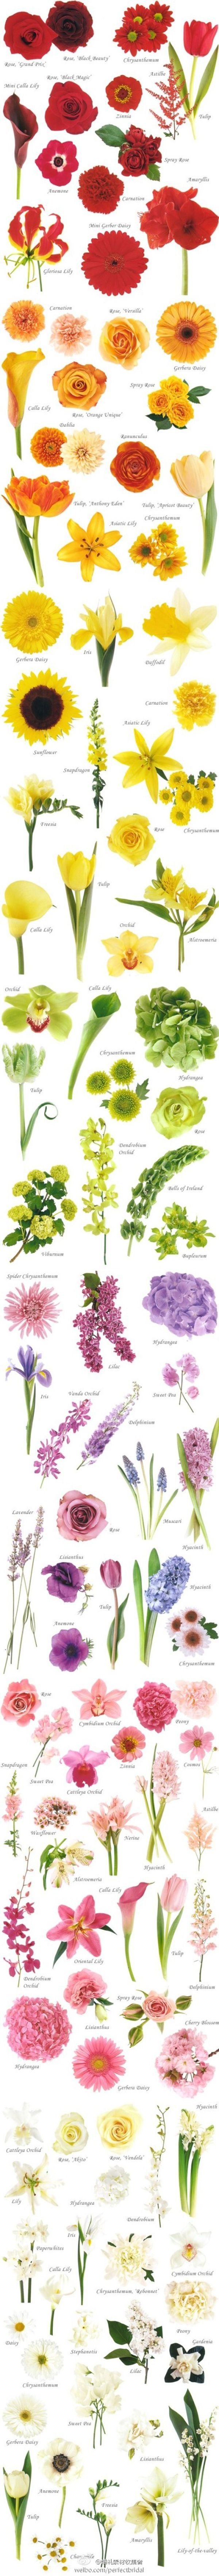 ....: Wedding Ideas, Flower Color, Wedding Flowers, Flower Name, Flowers Garden, Flower Guide, Flower Chart